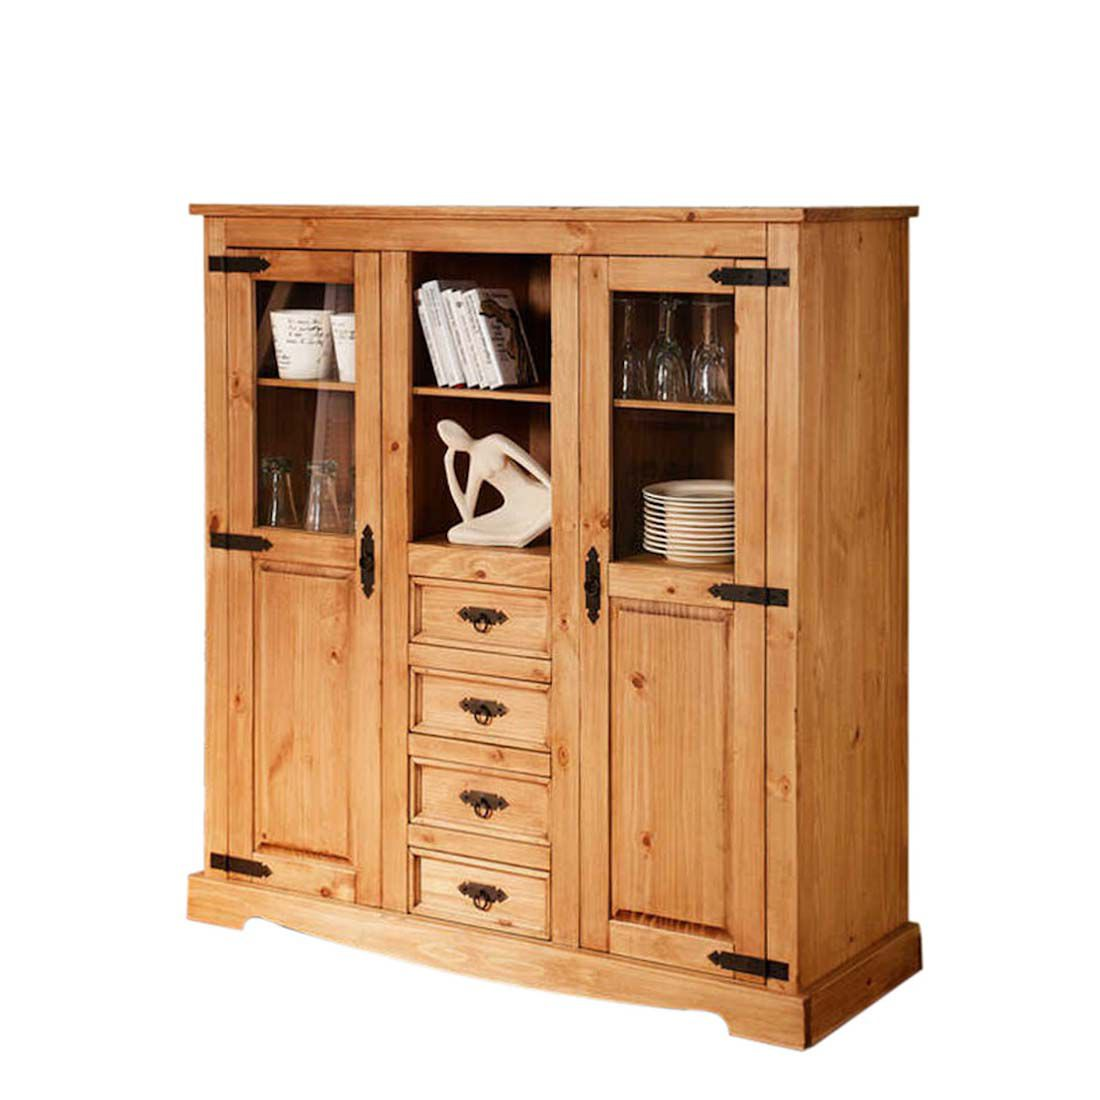 Highboard Zacateca Kiefer Massiv Antik Schrank Info